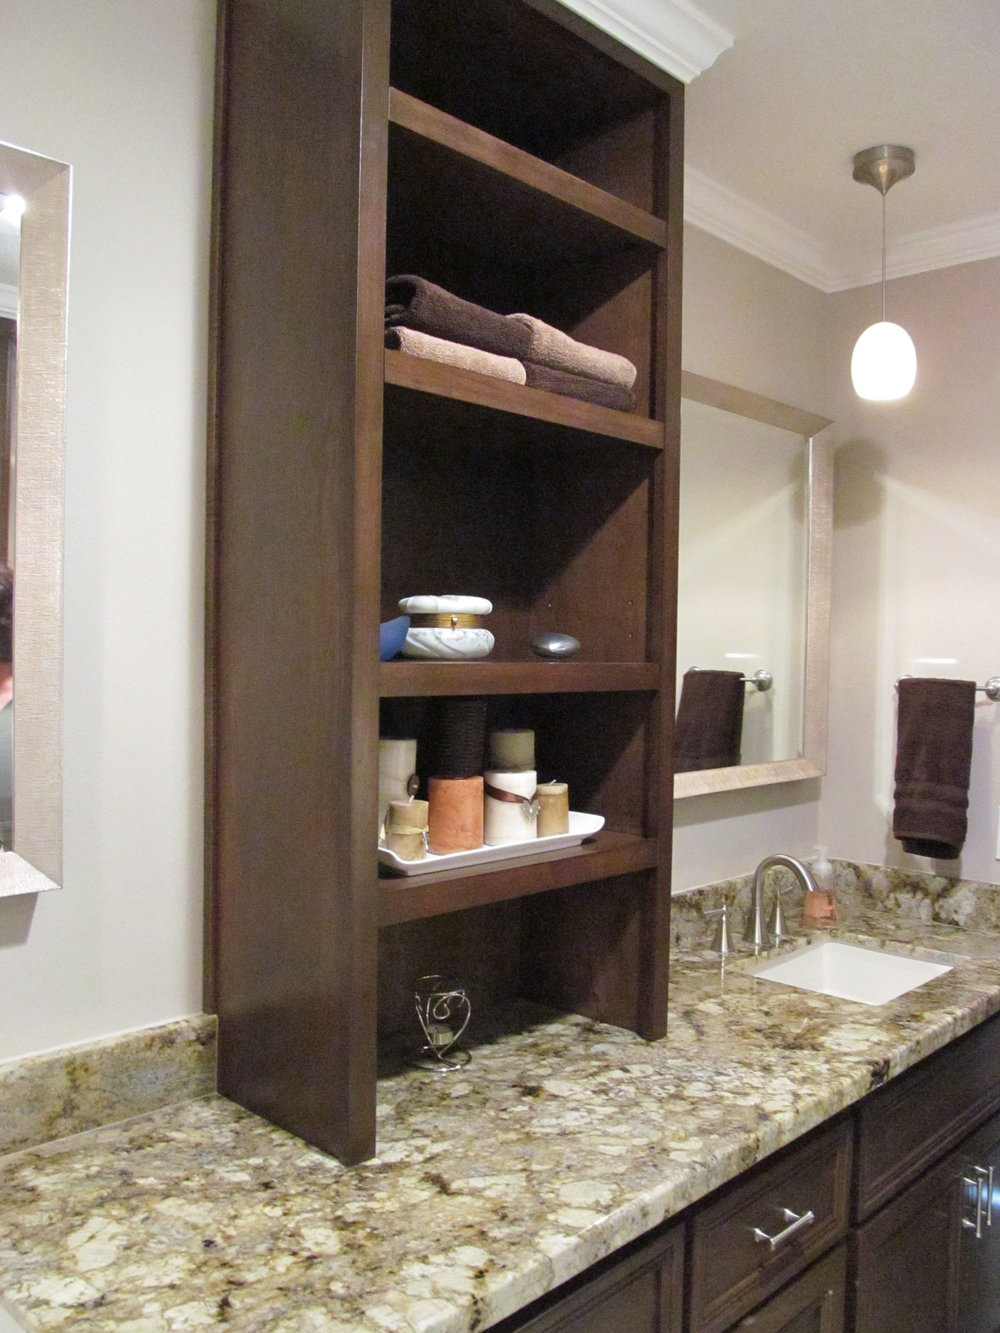 Tower cabinet adds a great deal of charm and space.JPG